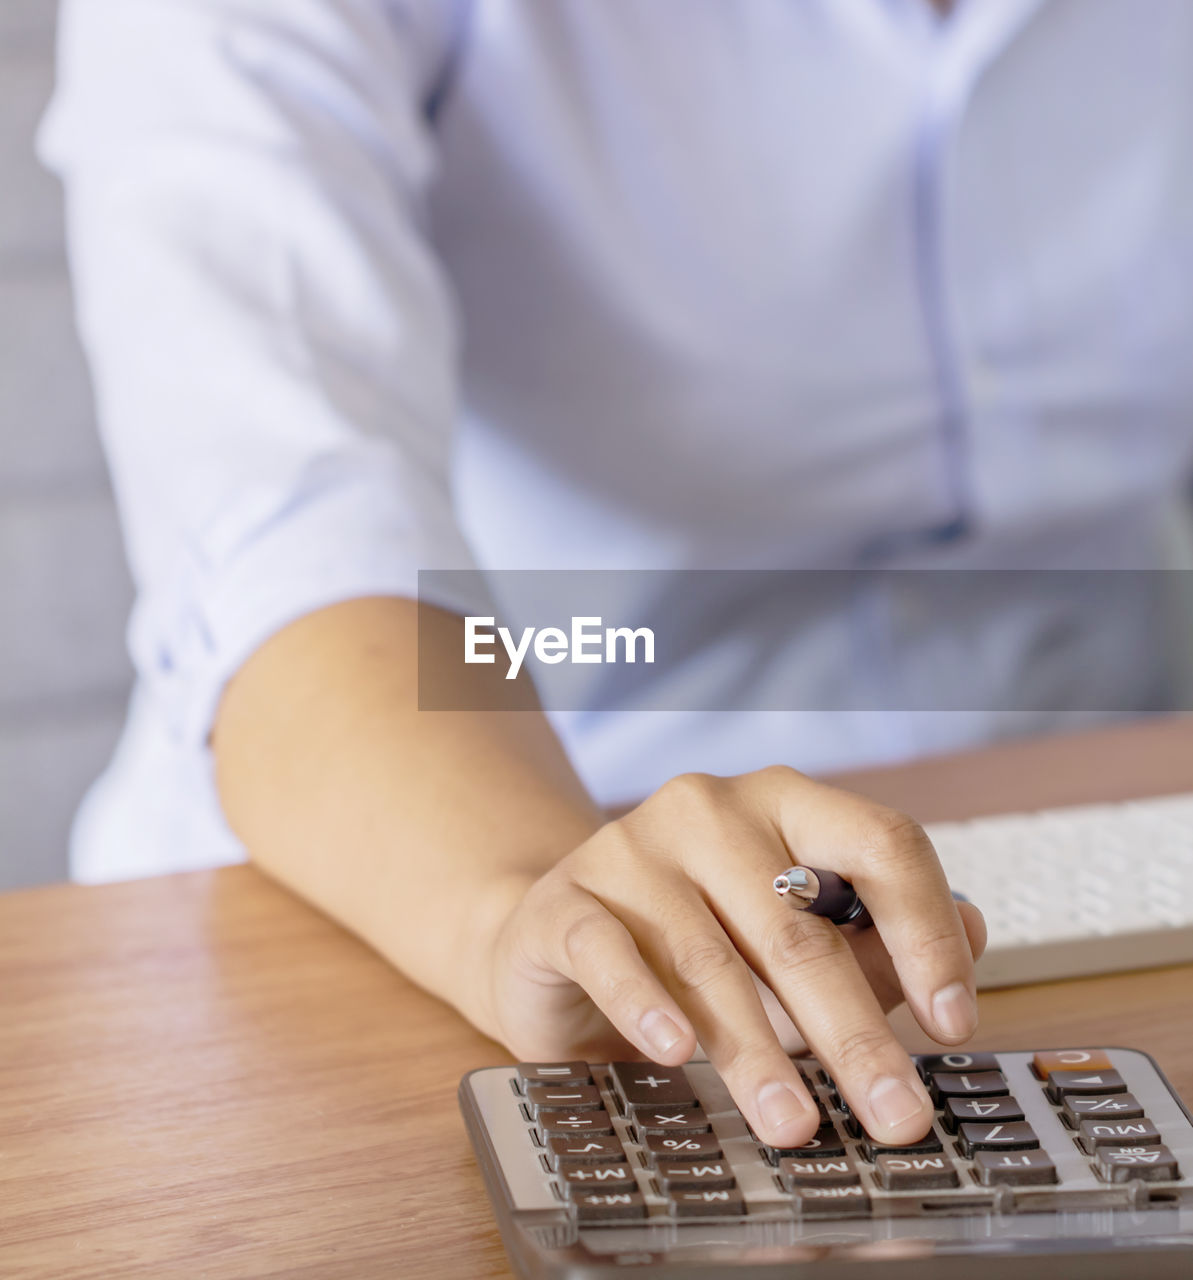 Midsection of businesswoman using calculator on table